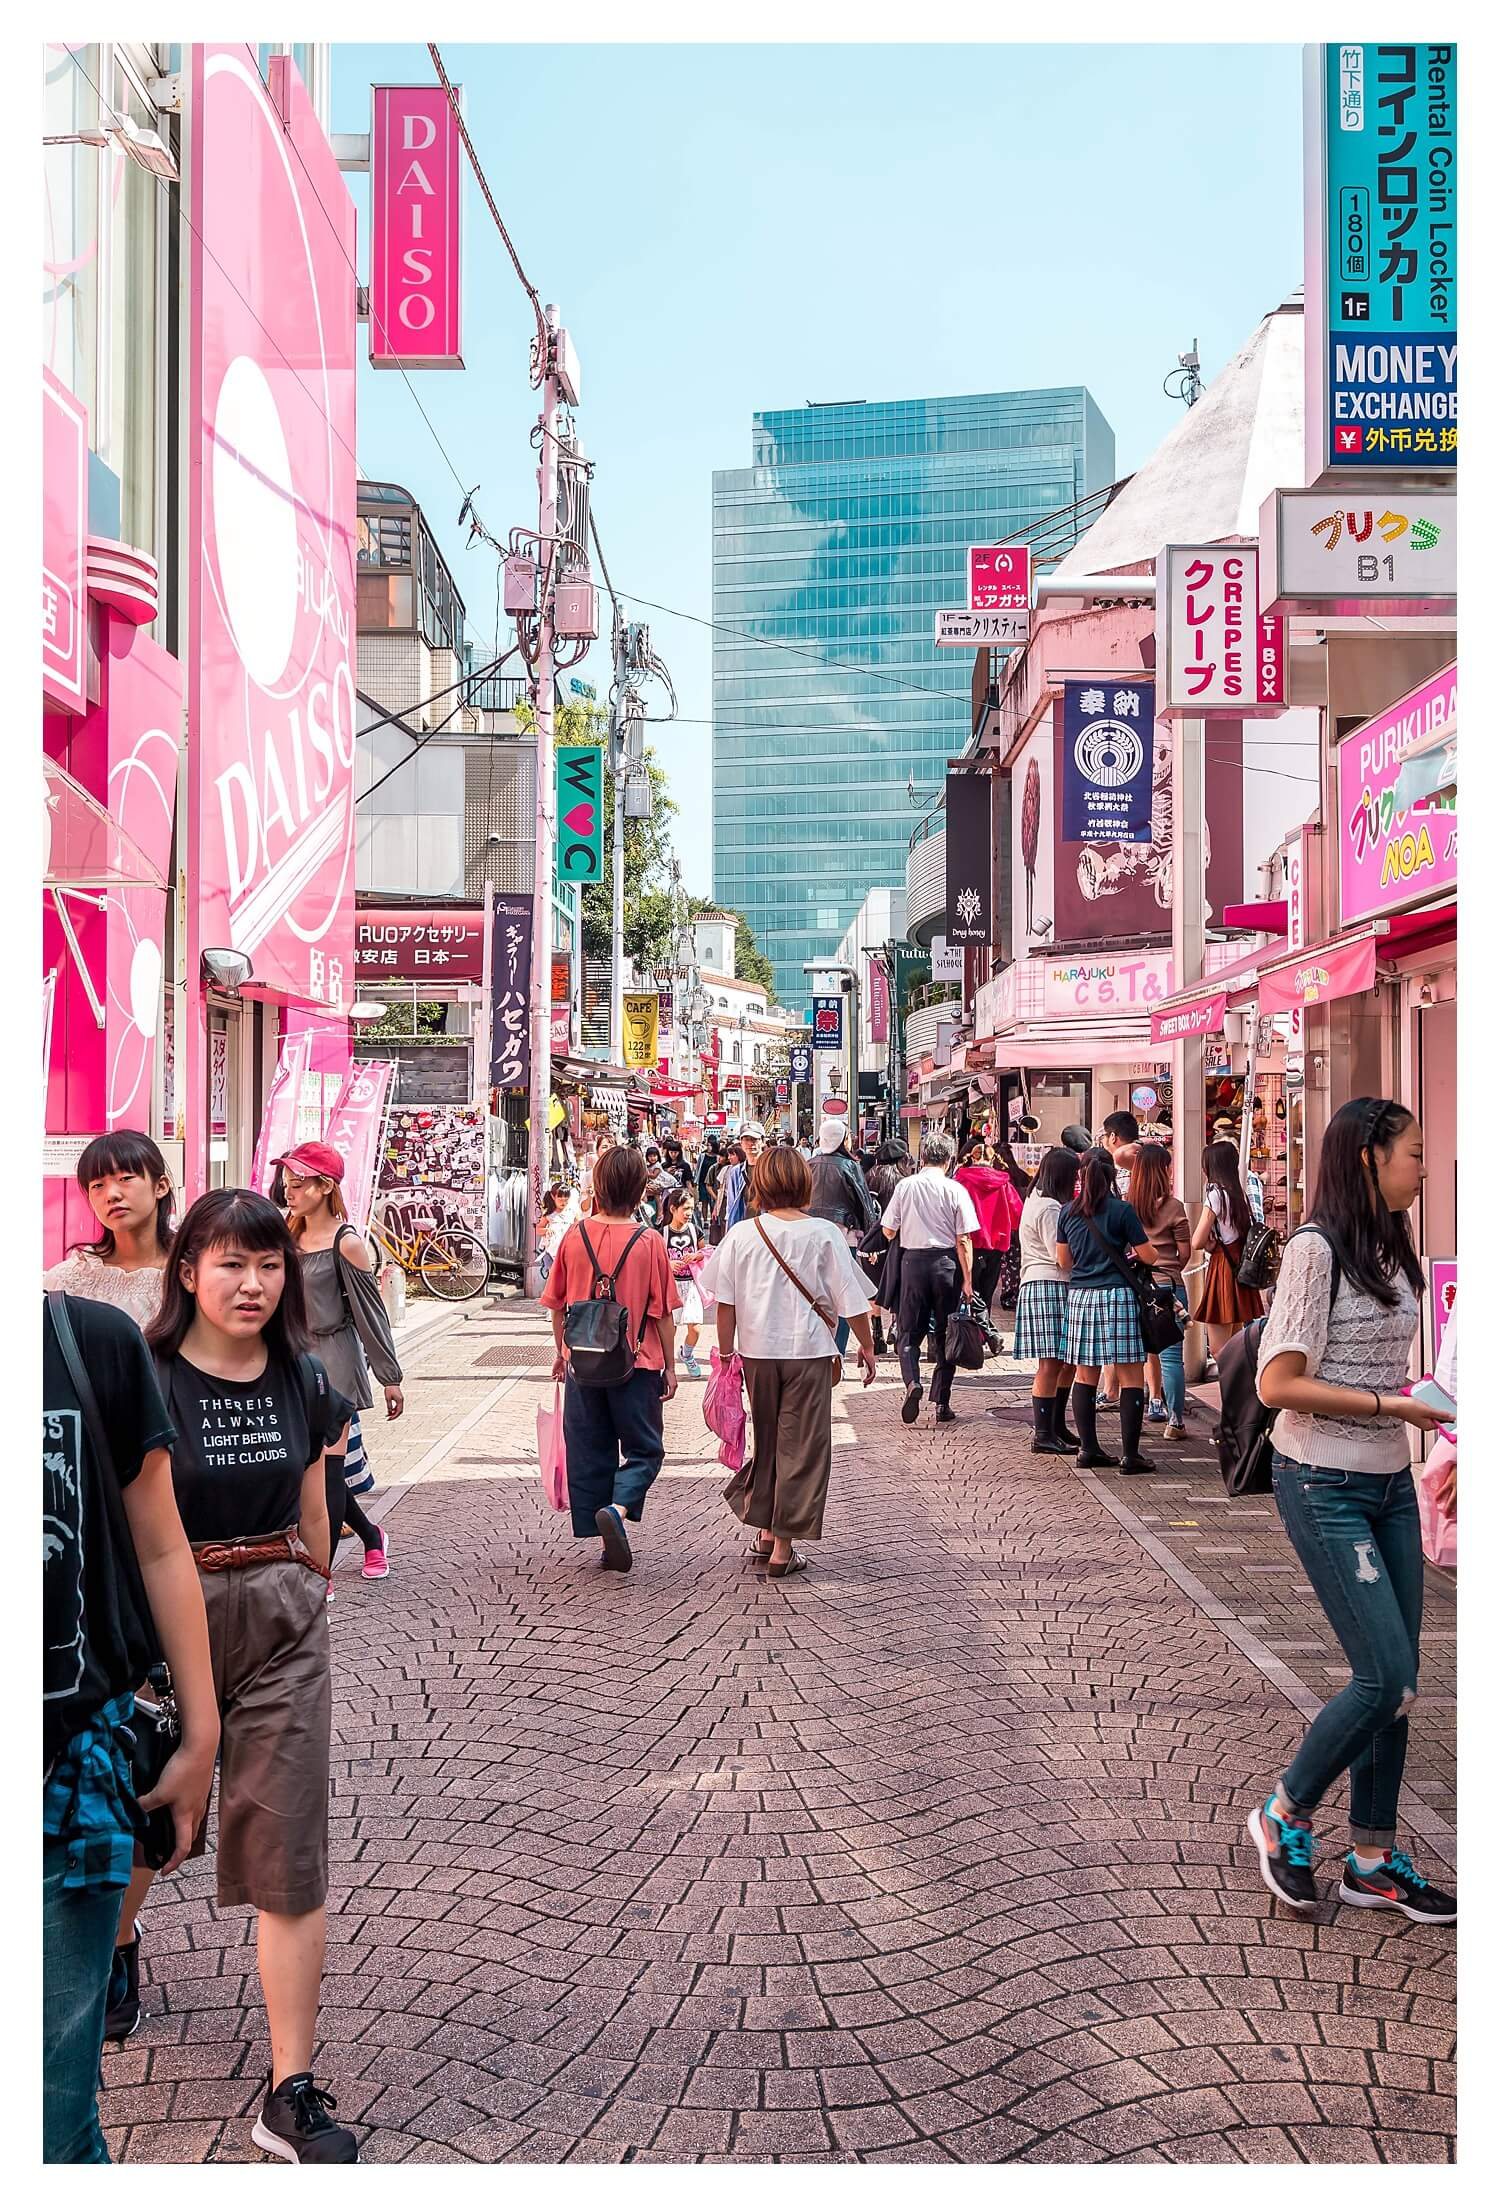 The complete guide to Harajuku - the cute, cool and crazy fashion district of Tokyo